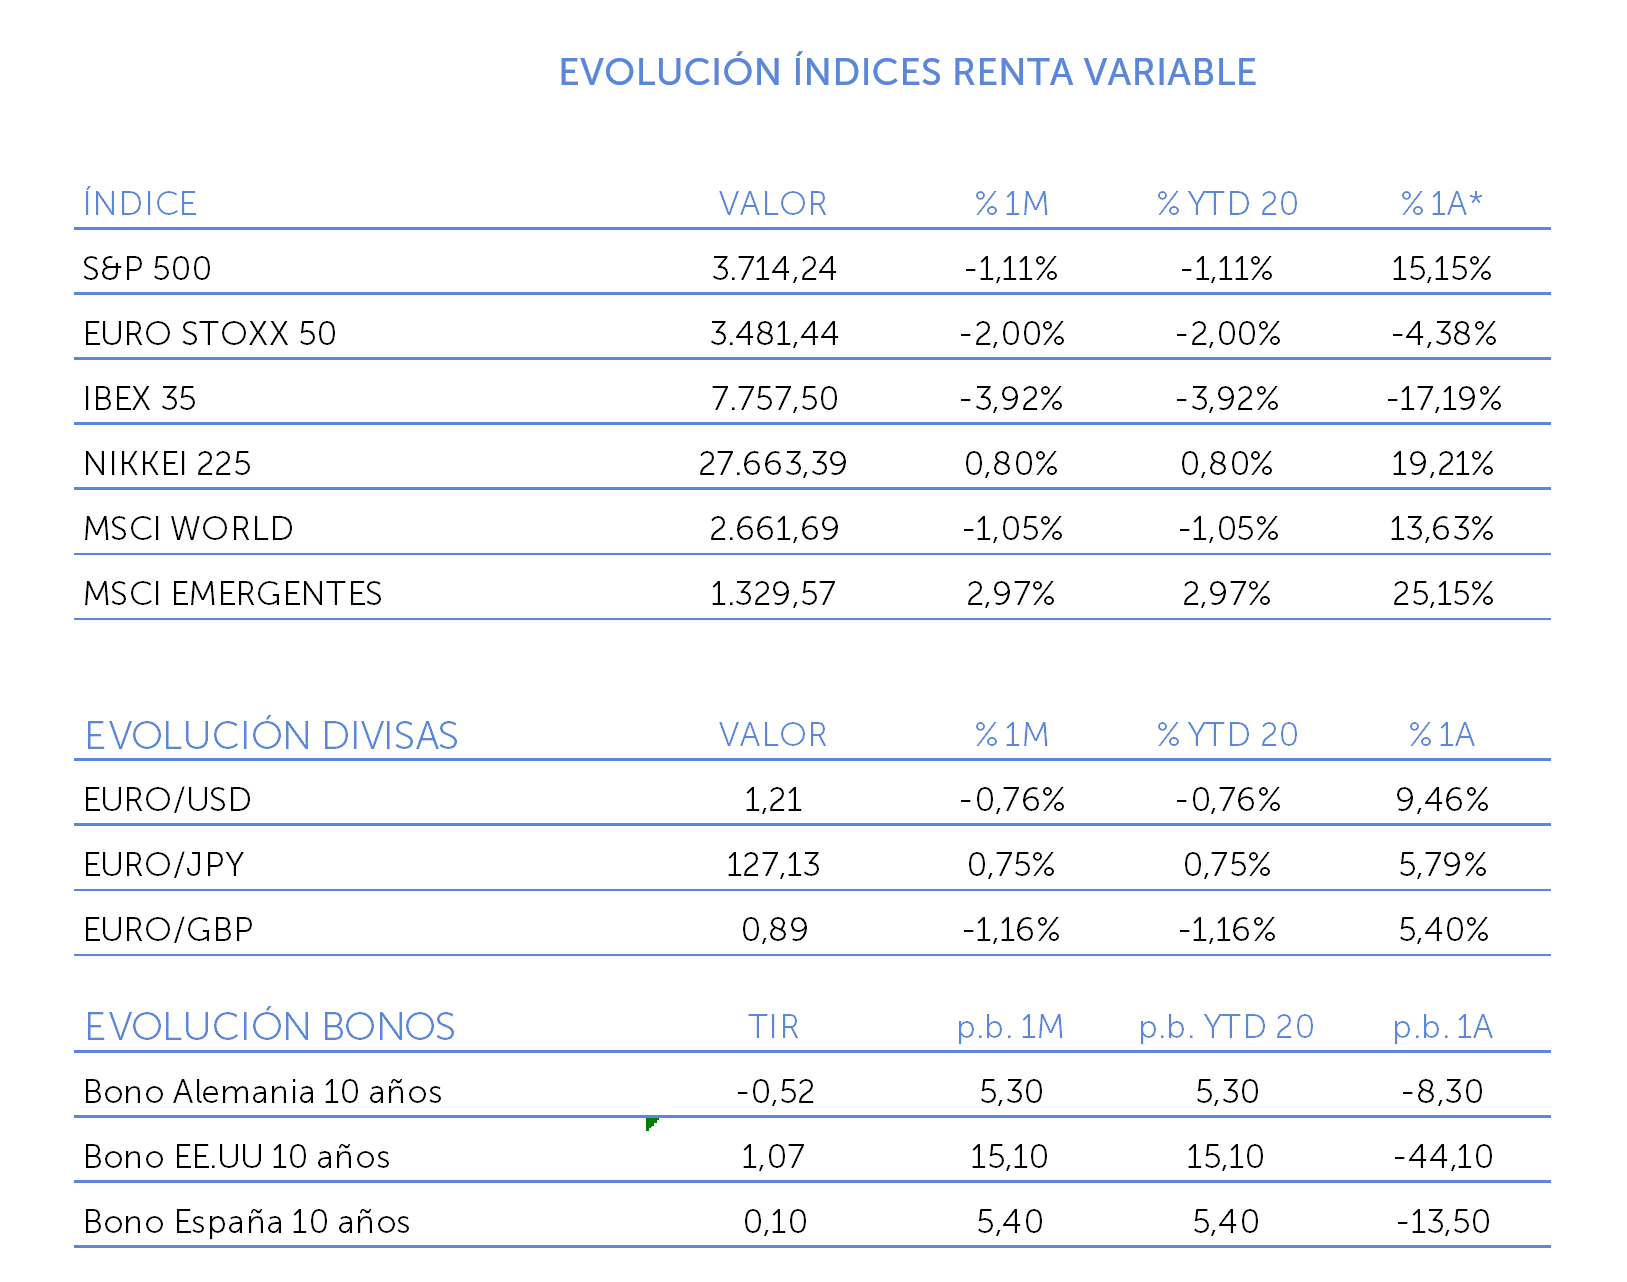 evolucion indice renta variable enero 2021